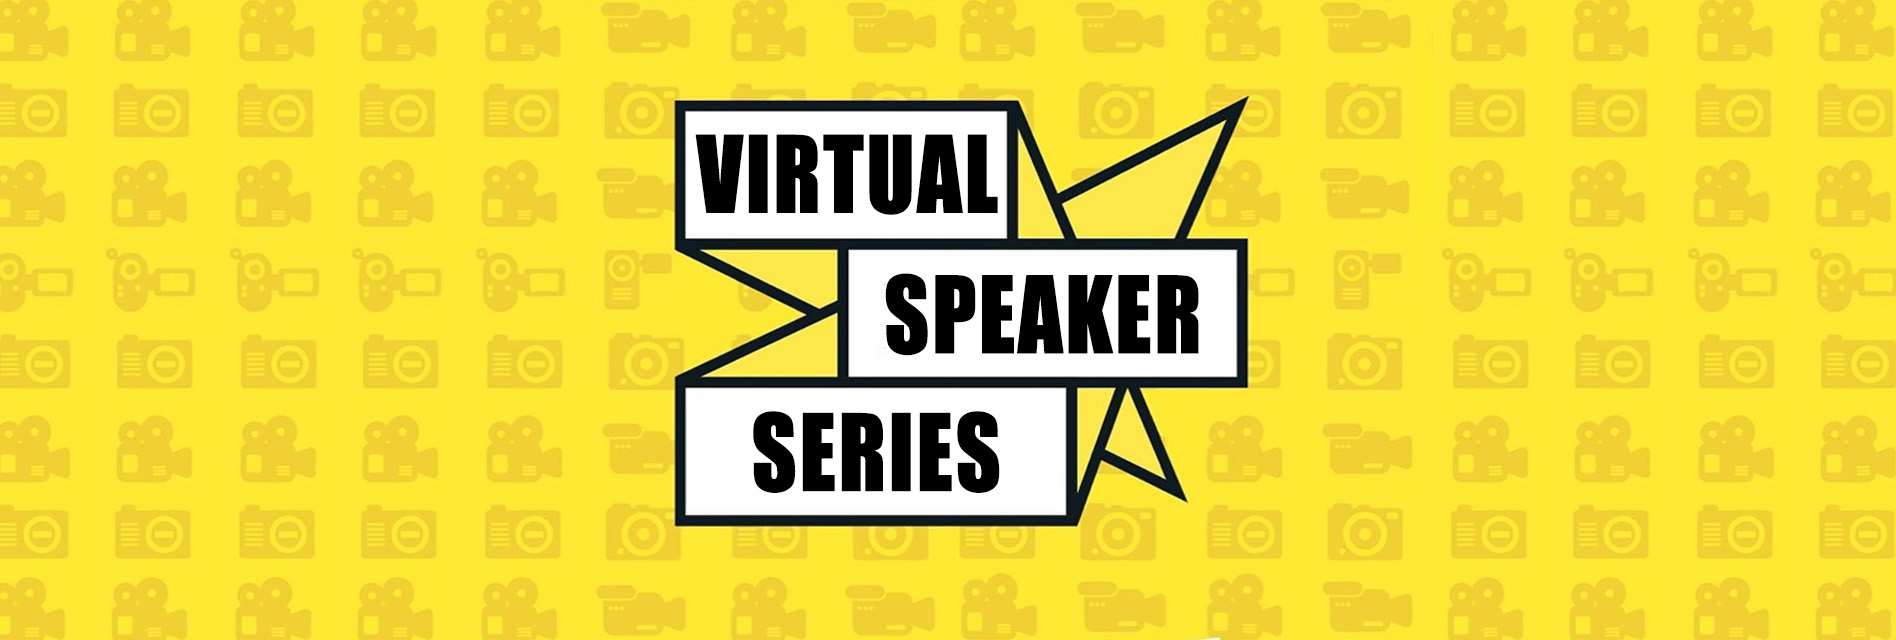 Virtual Speaker Series